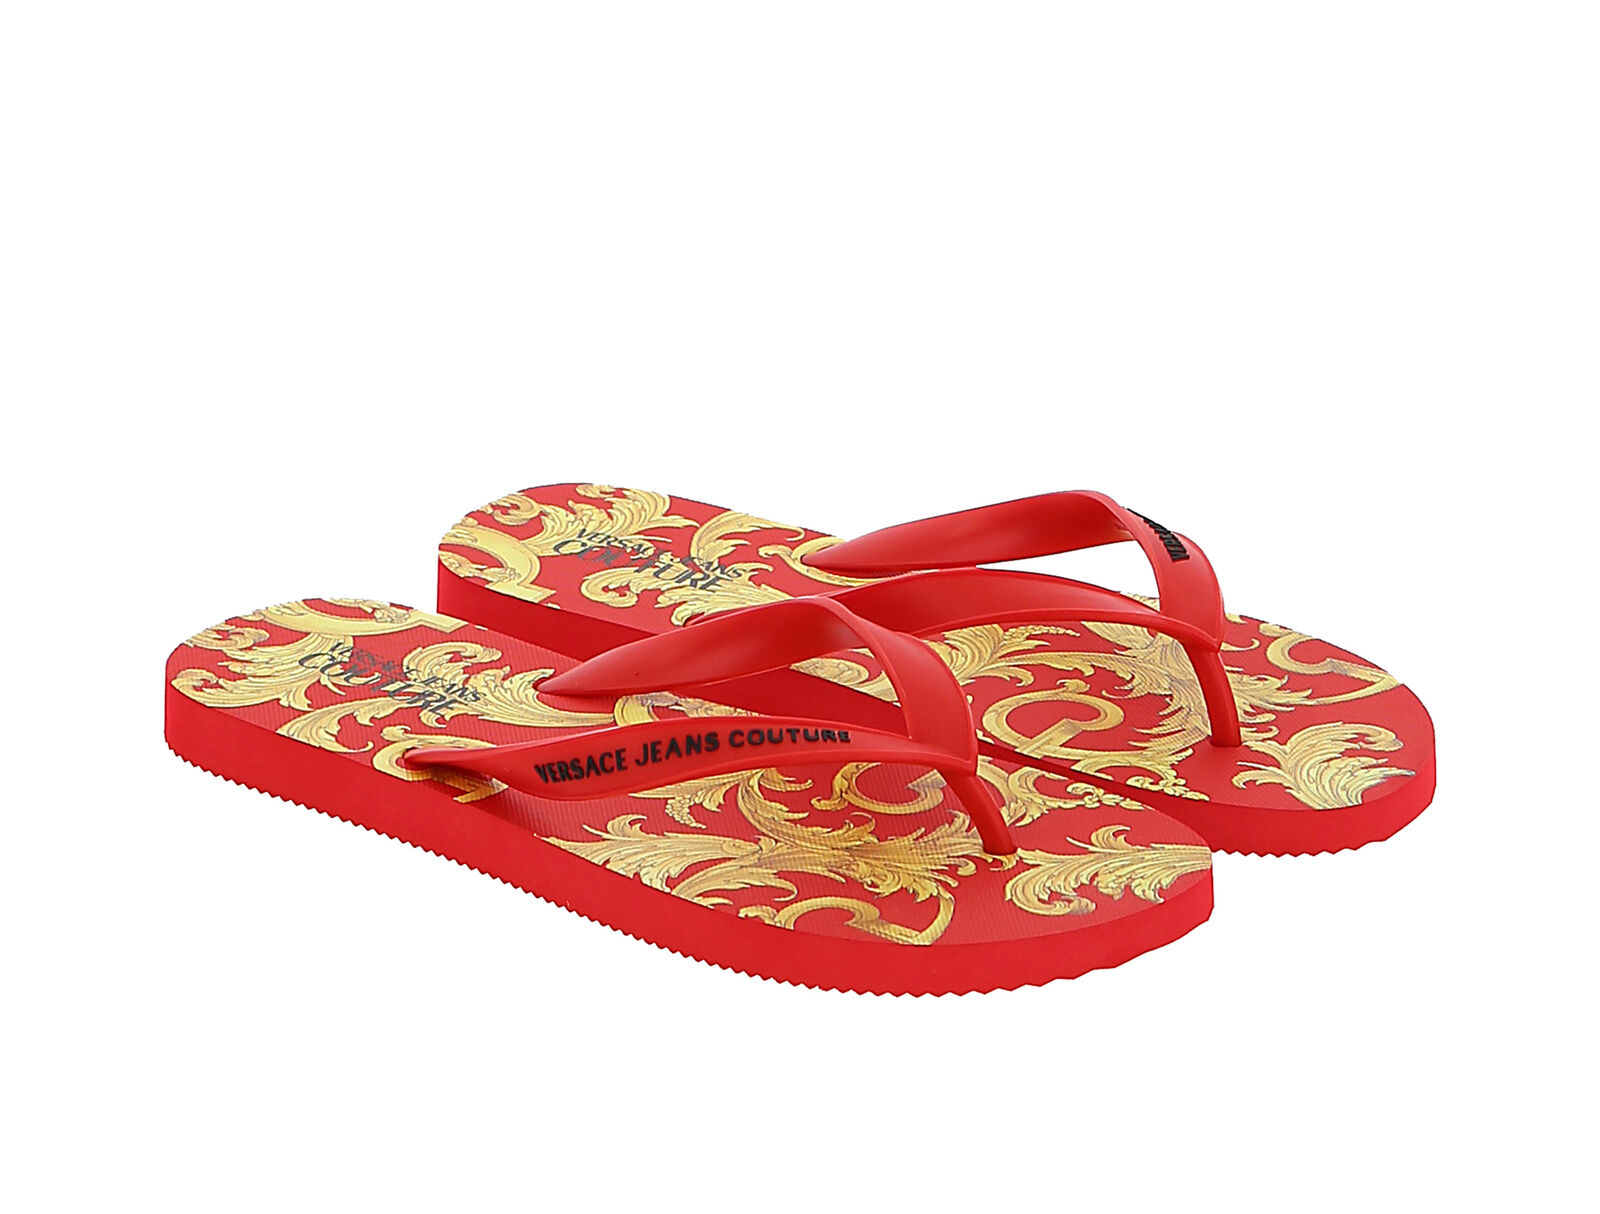 Versace Jeans Couture Red/Gold Baroque Print Flip Flop Slide